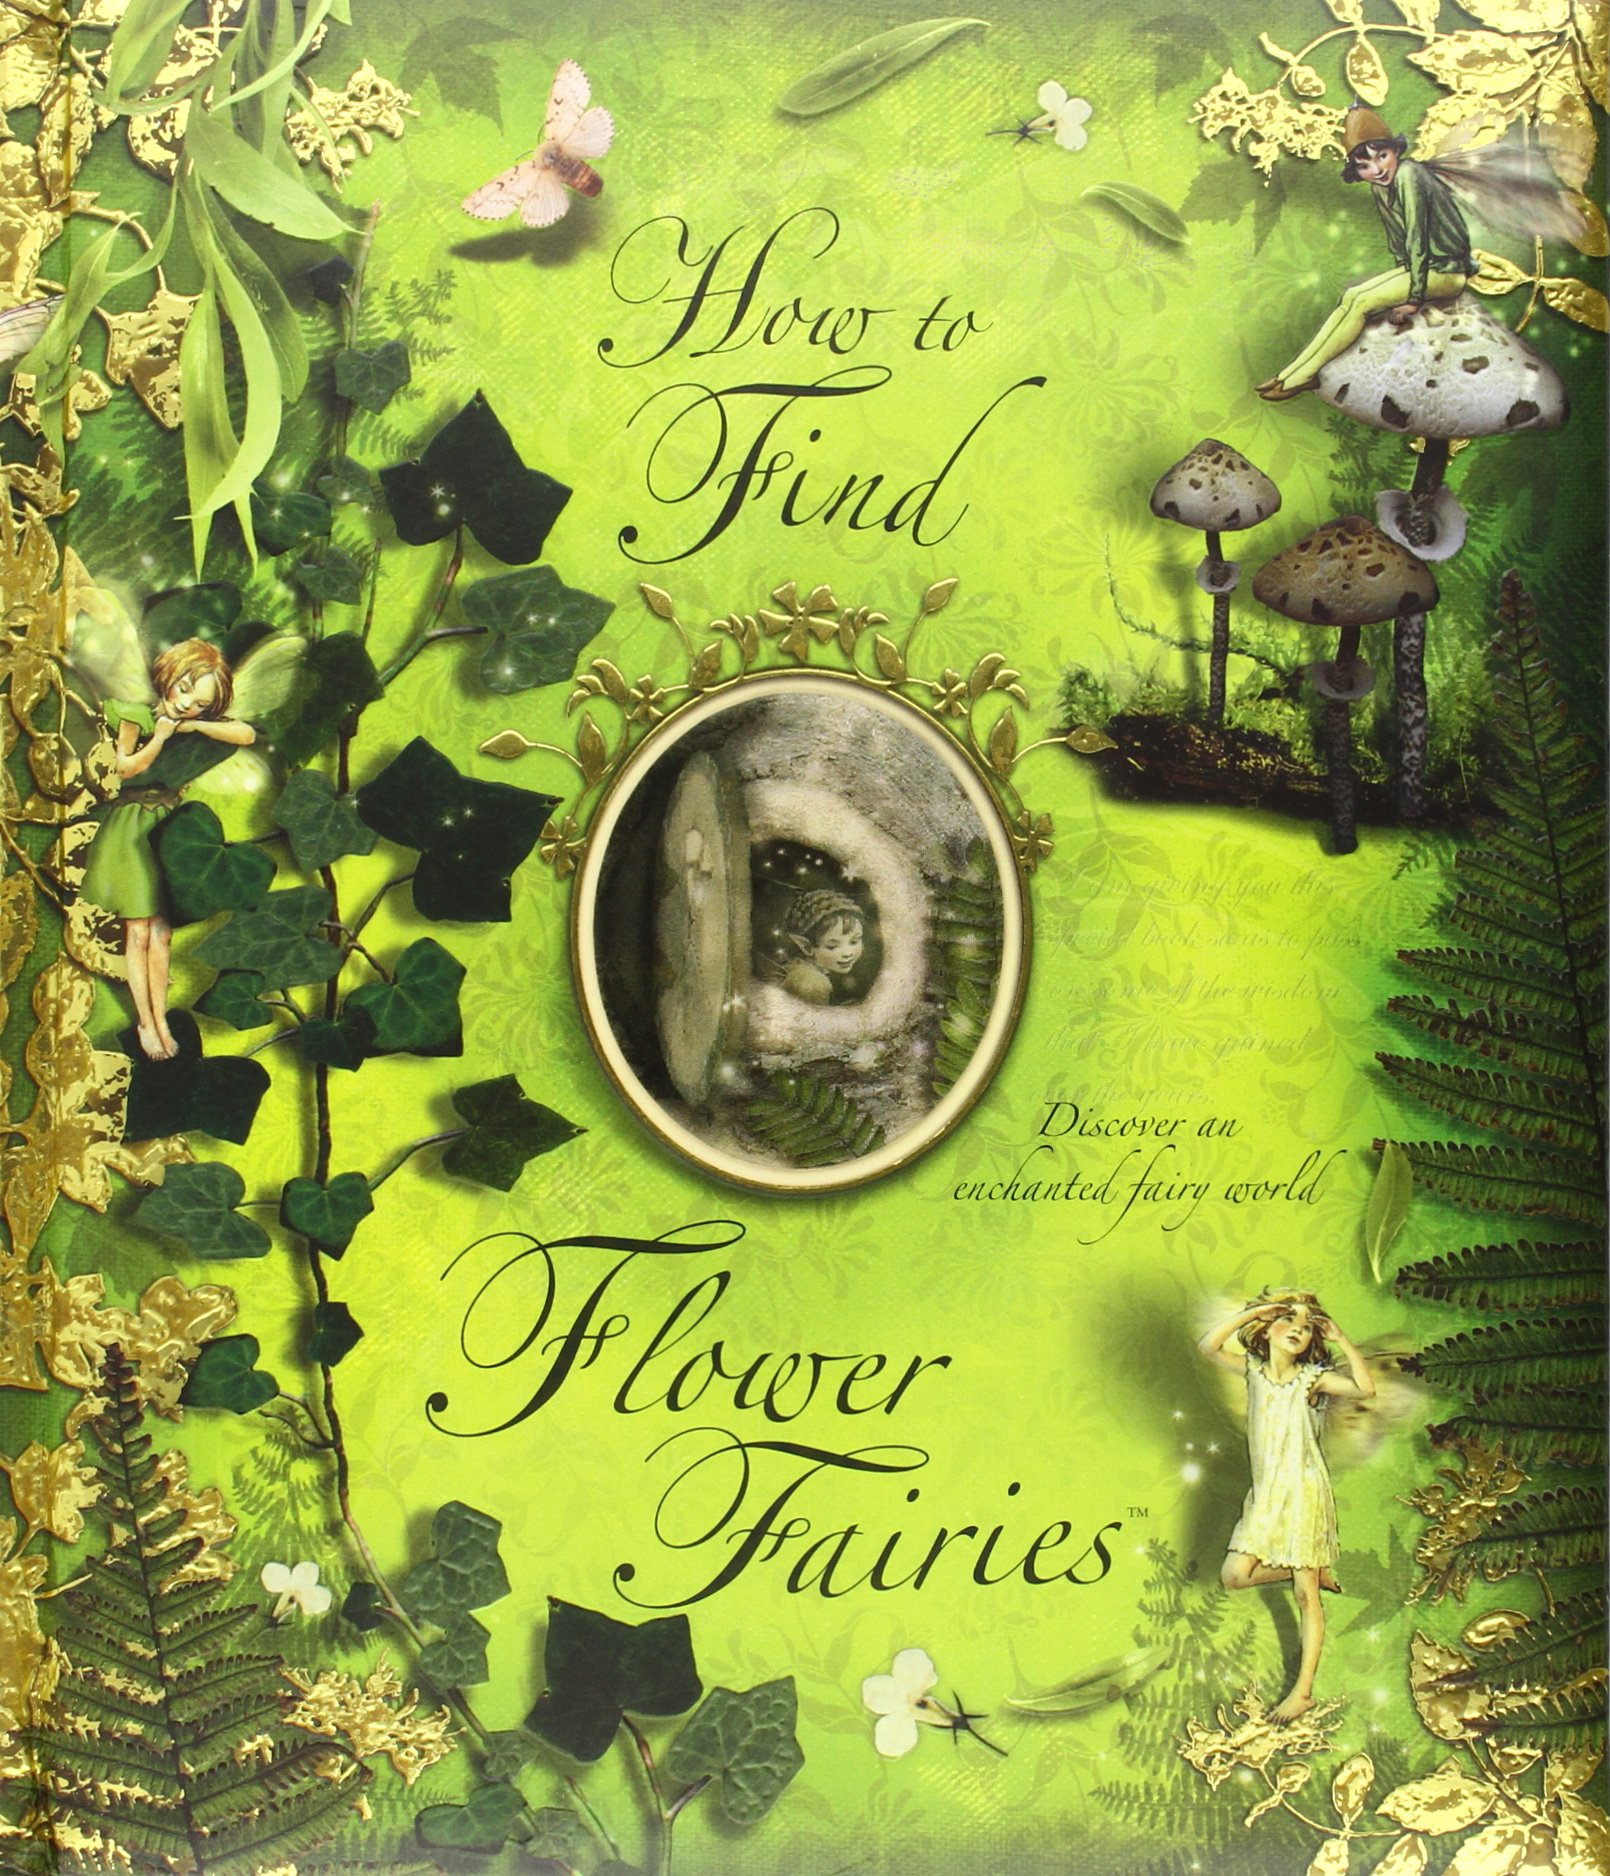 Find Flower Fairies Cicely Barker product image